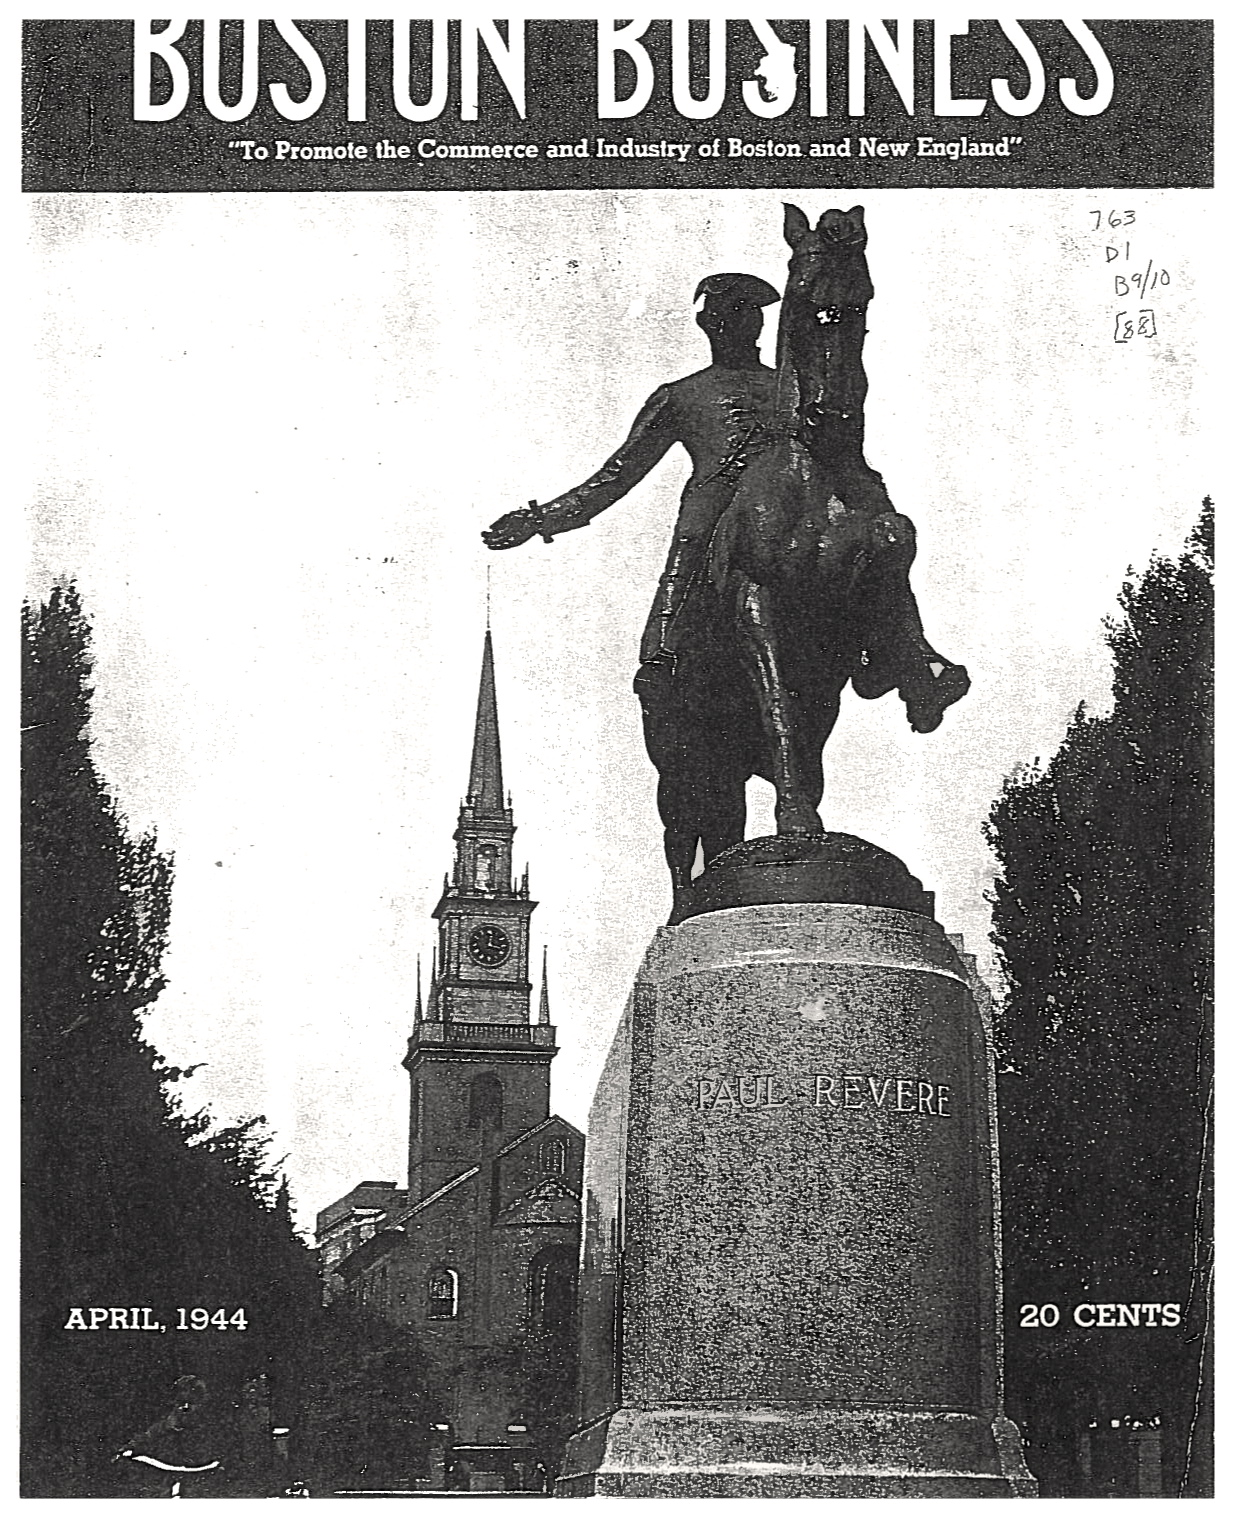 Boston Business, April 1944